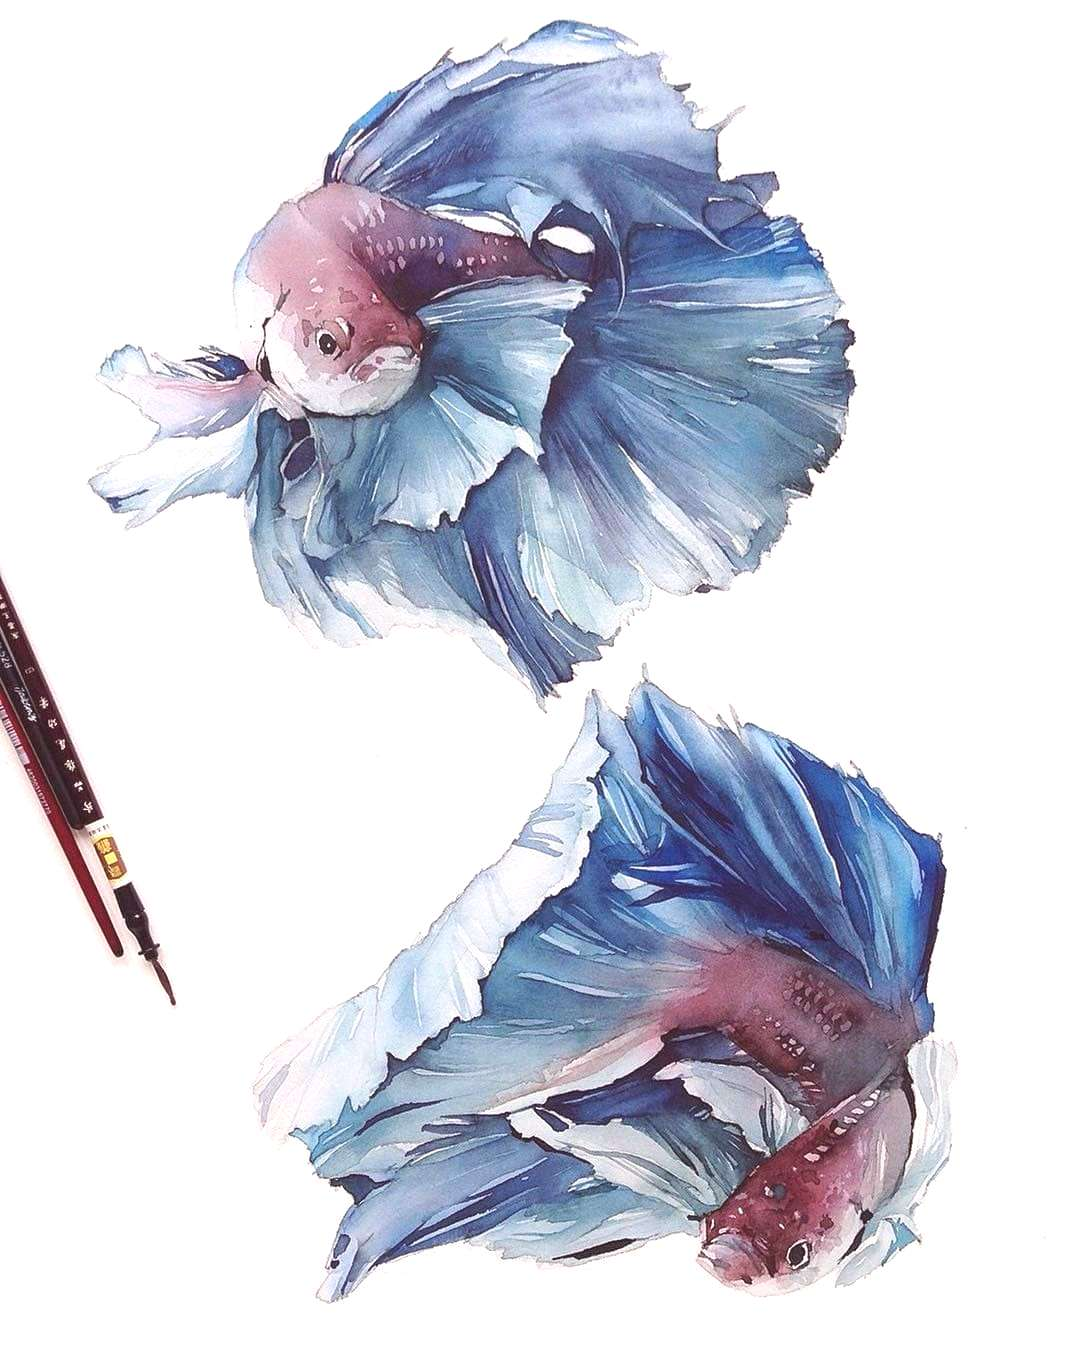 """Watercolor Aquarelle Акварель on Instagram """"More art every day on @watercolor_daily ✔"""